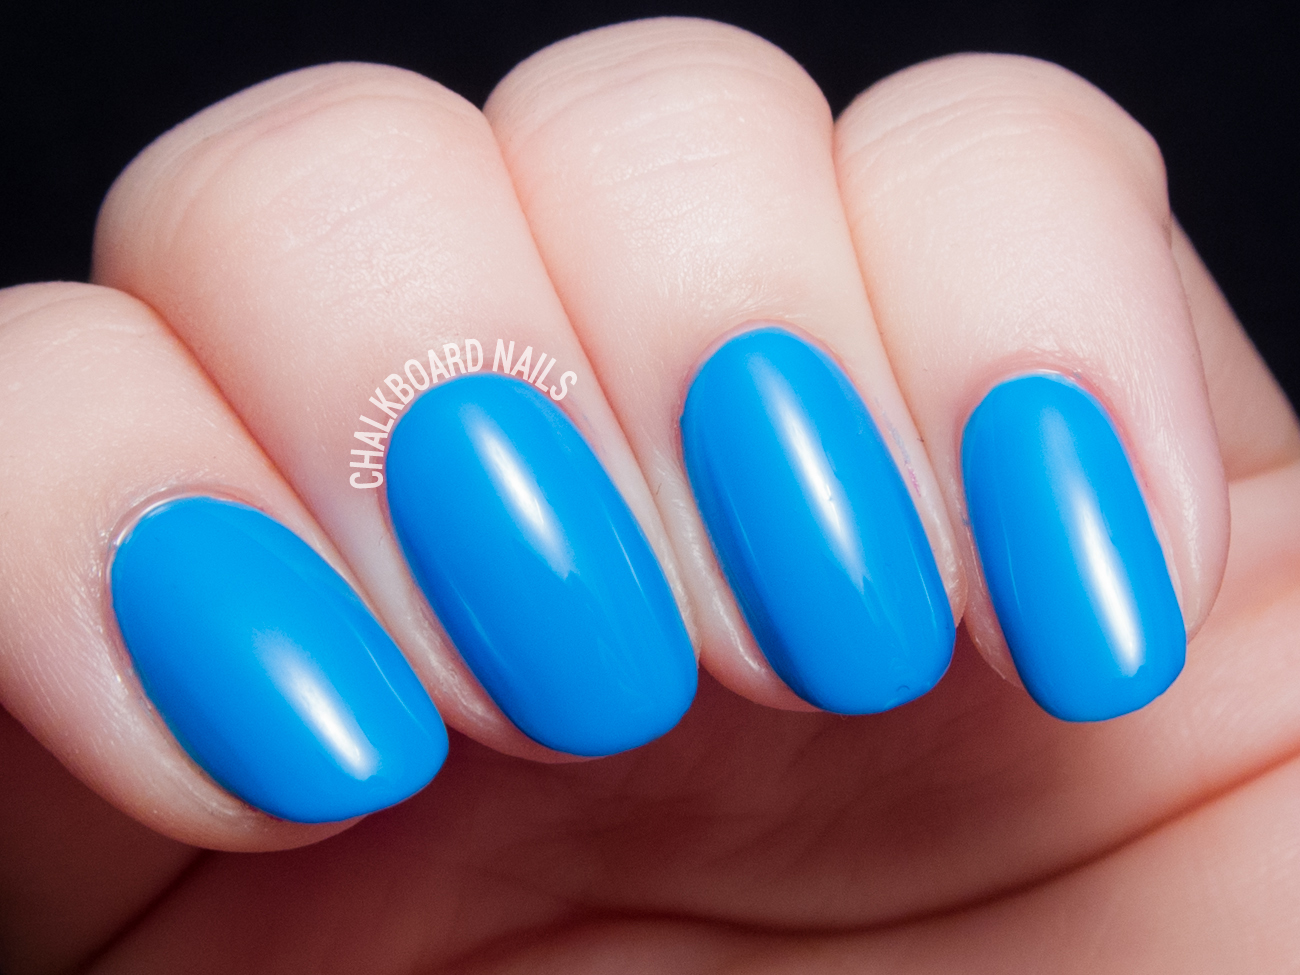 China Glaze DJ Blue My Mind via @chalkboardnails